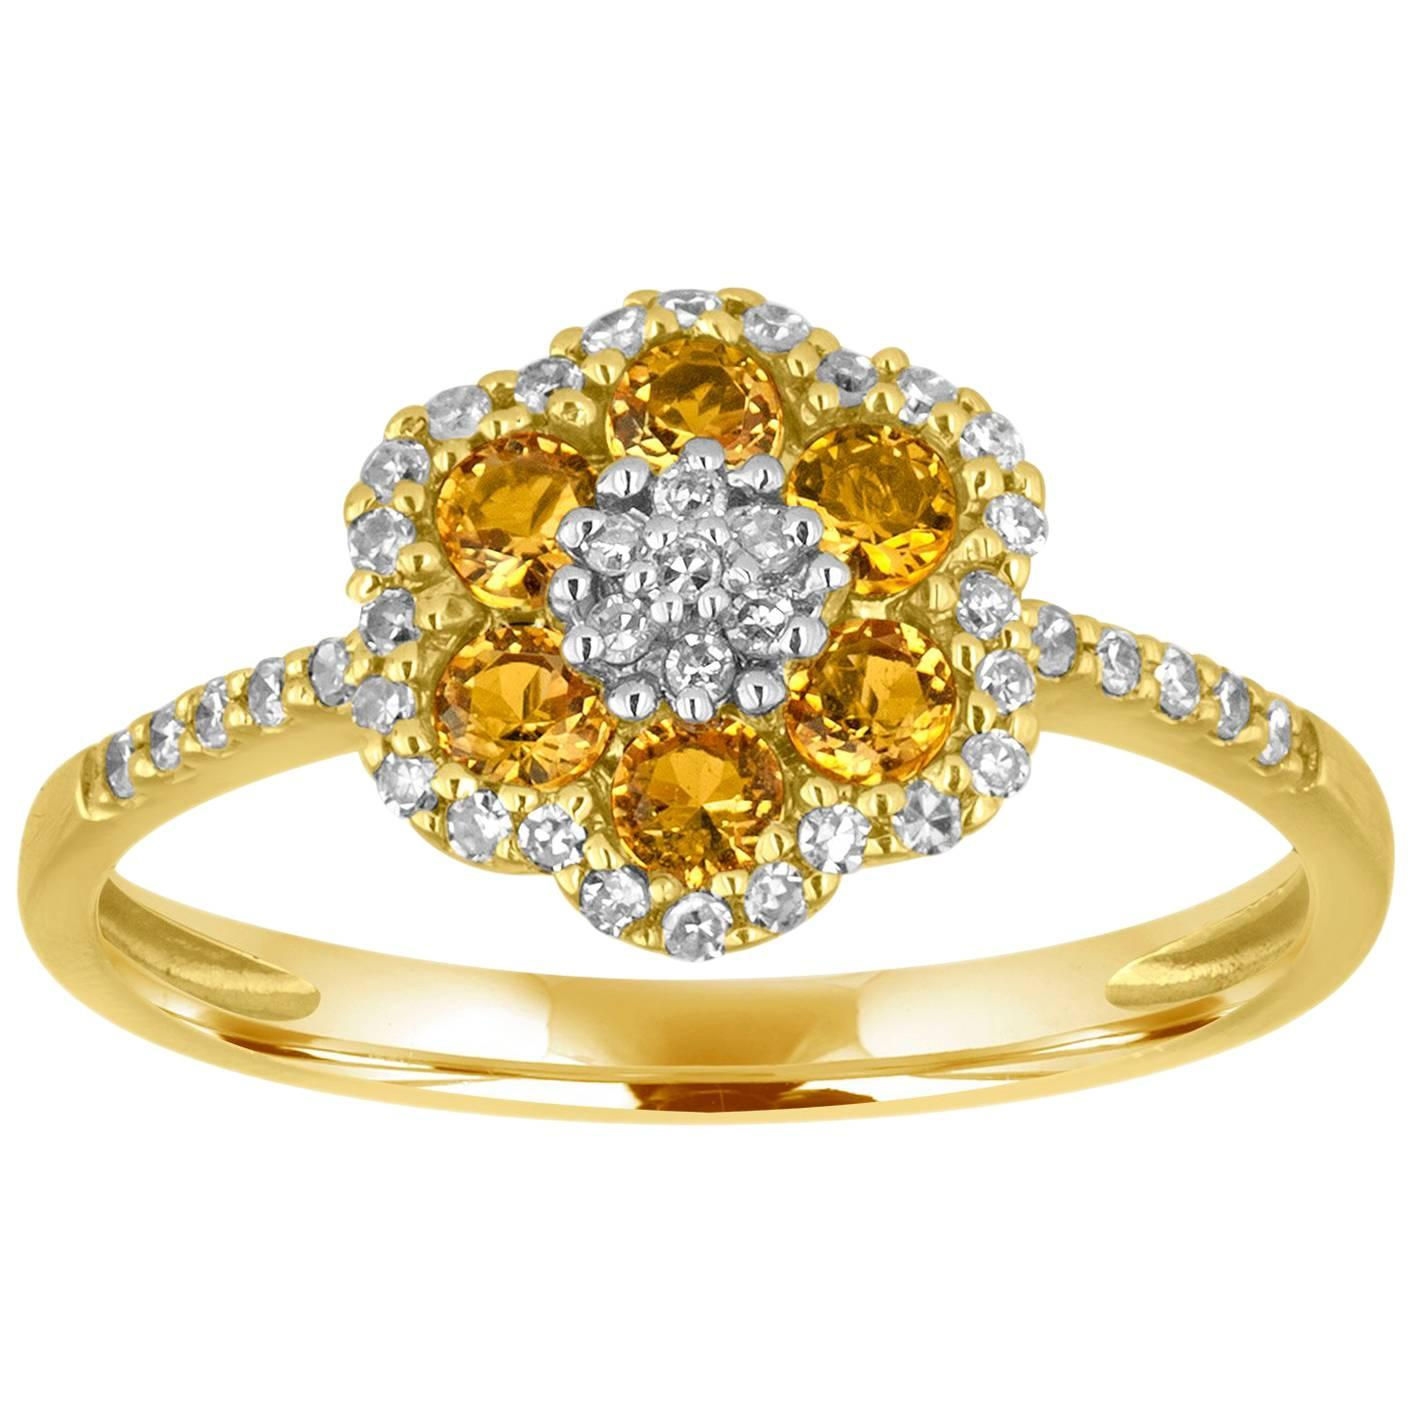 0.52 Carats Diamonds and Citrine Gold Flower Ring